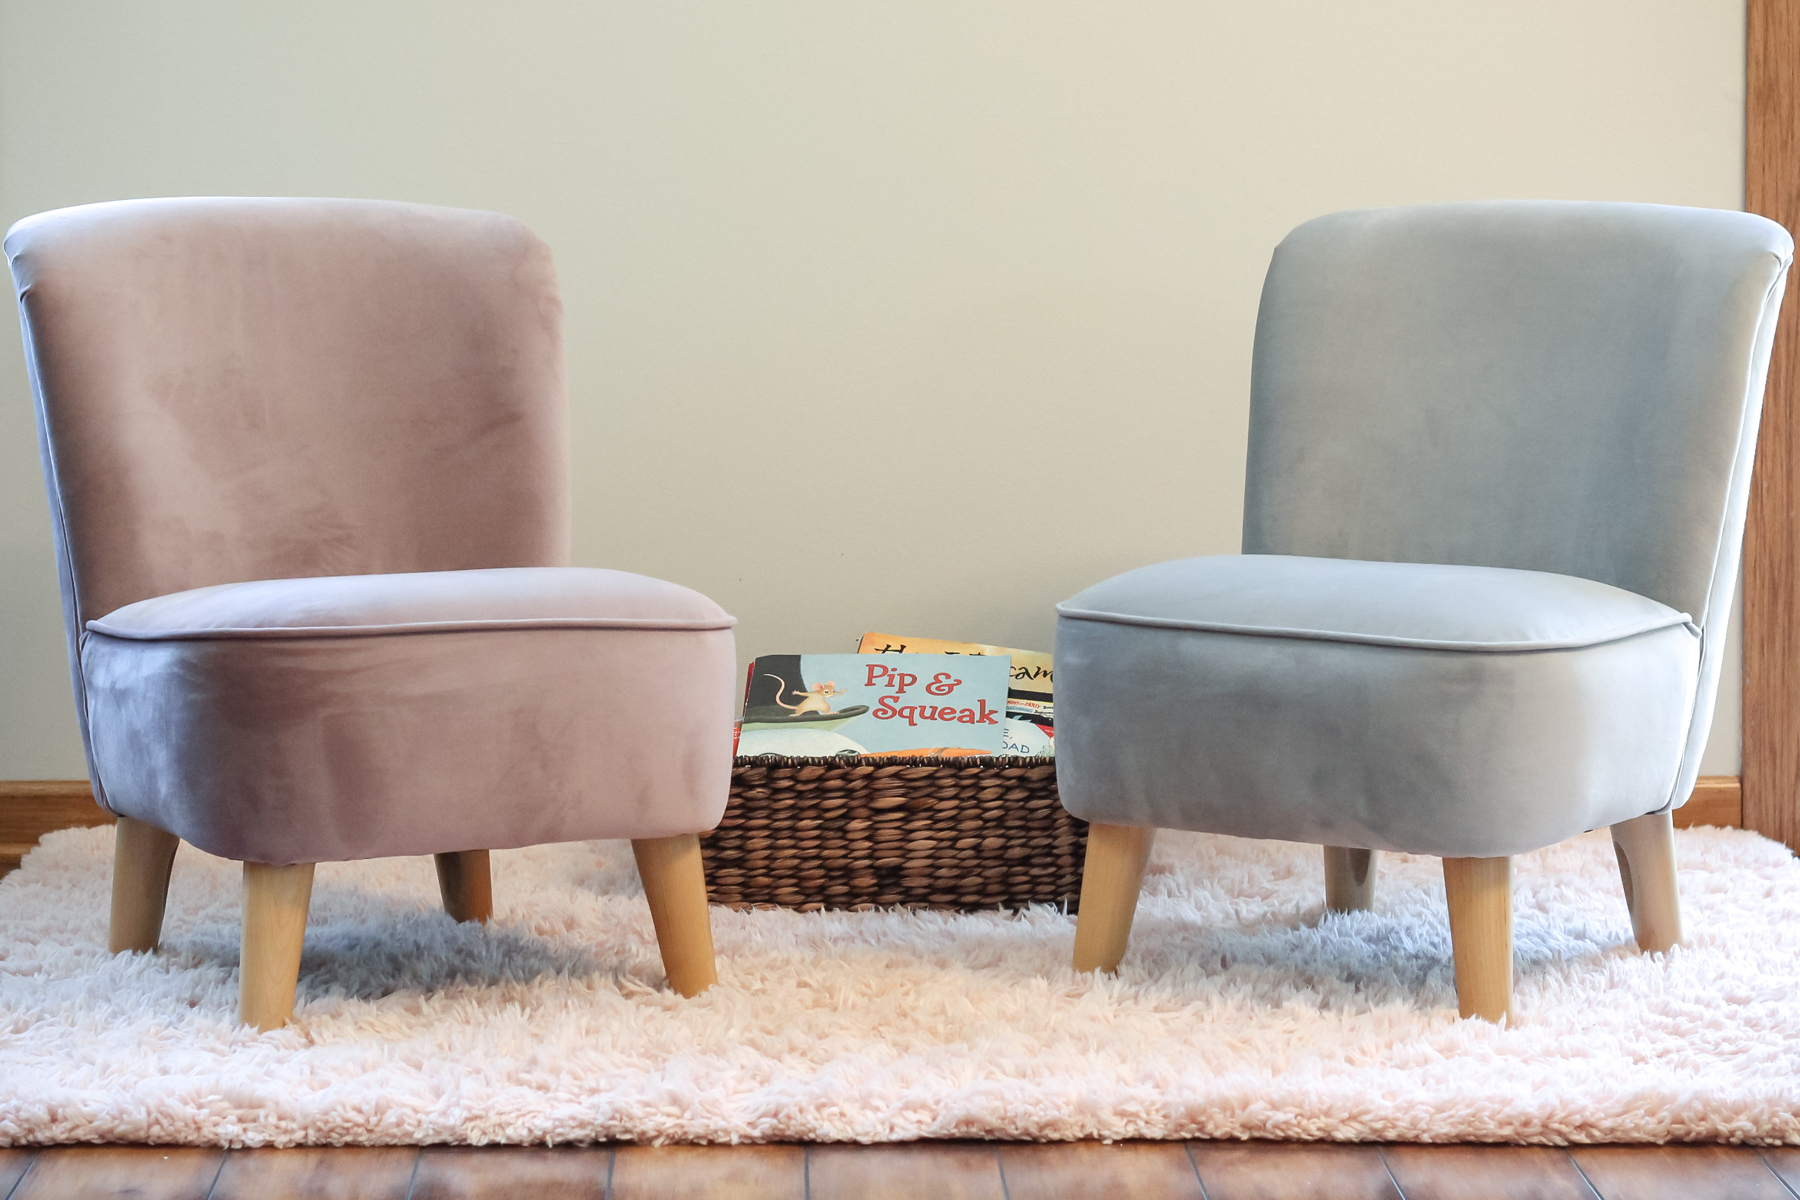 I Truly Believe That You Can Feel The Softness In The Photos. Each Chair Is  Silky Soft, Incredibly Smooth, And Ultra Plush.